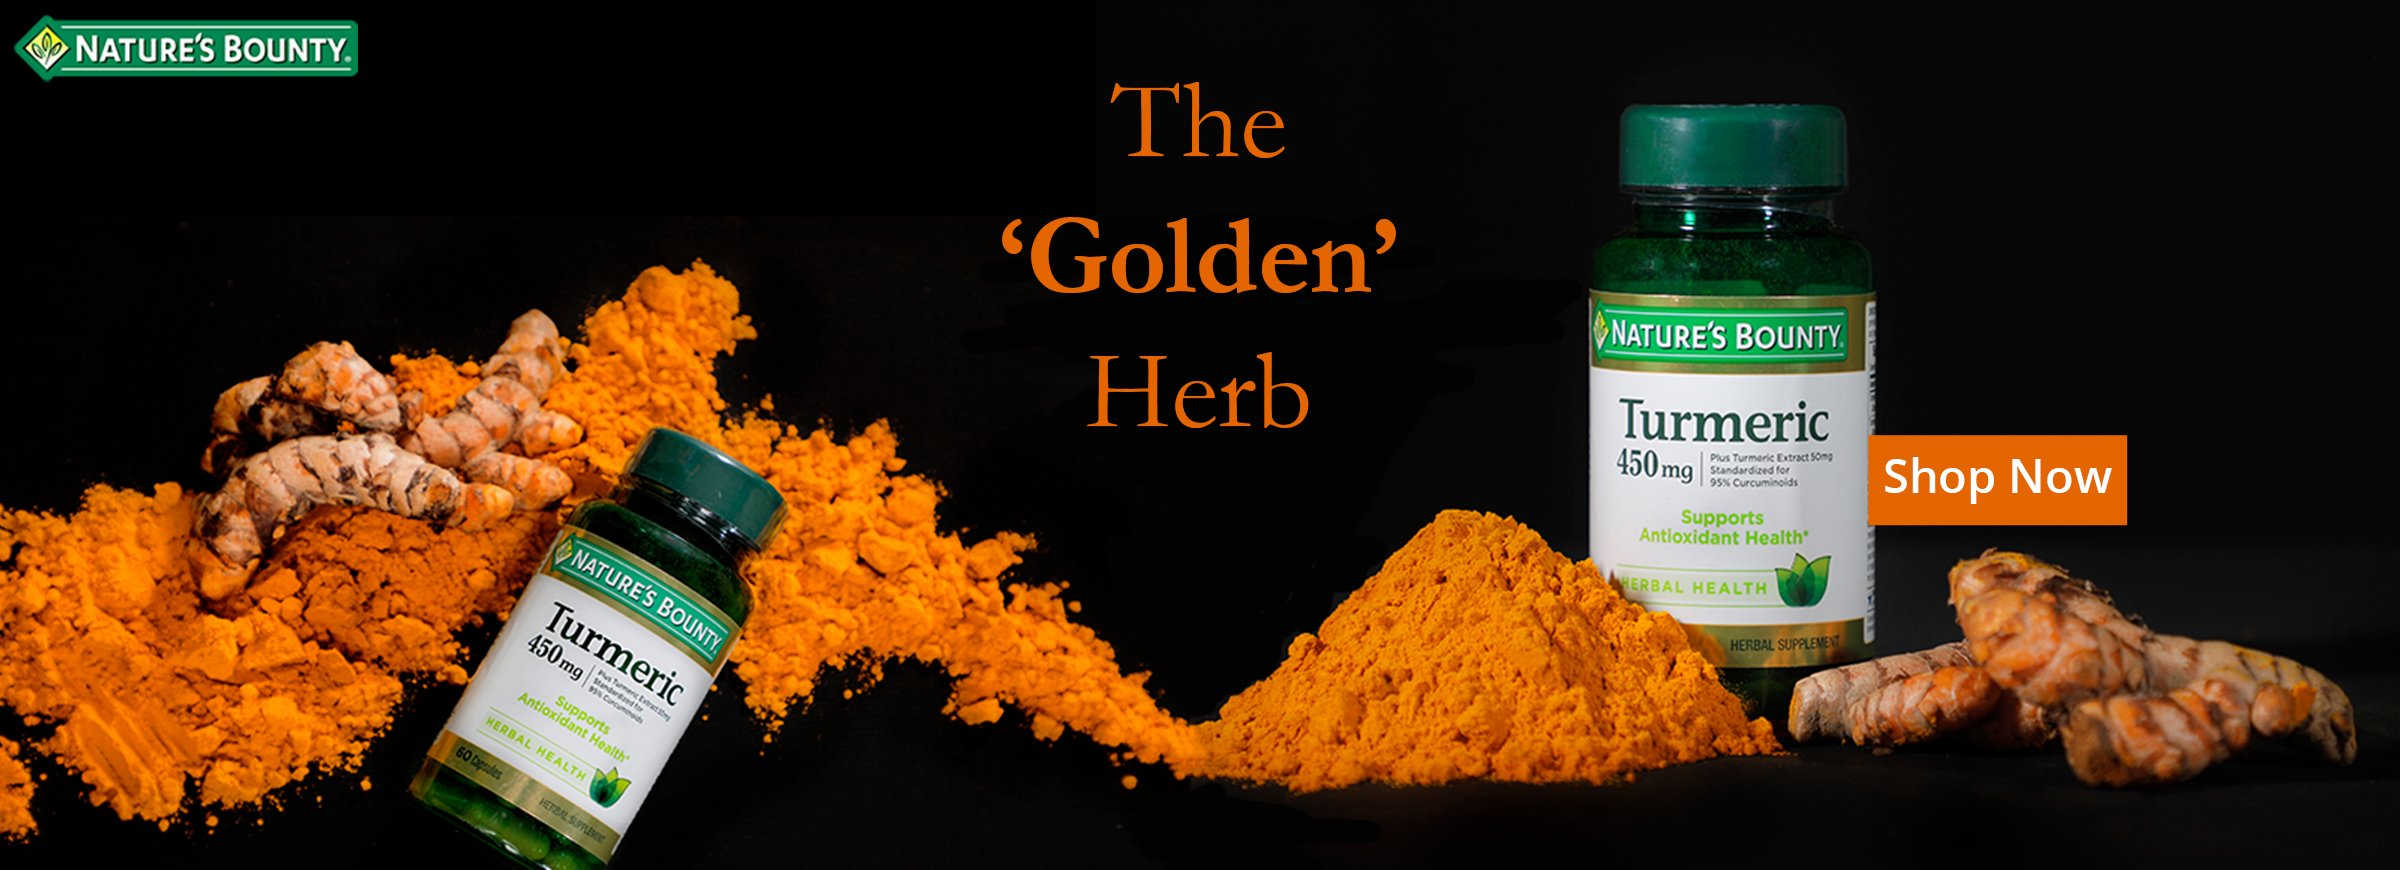 Turmeric, The golden herb